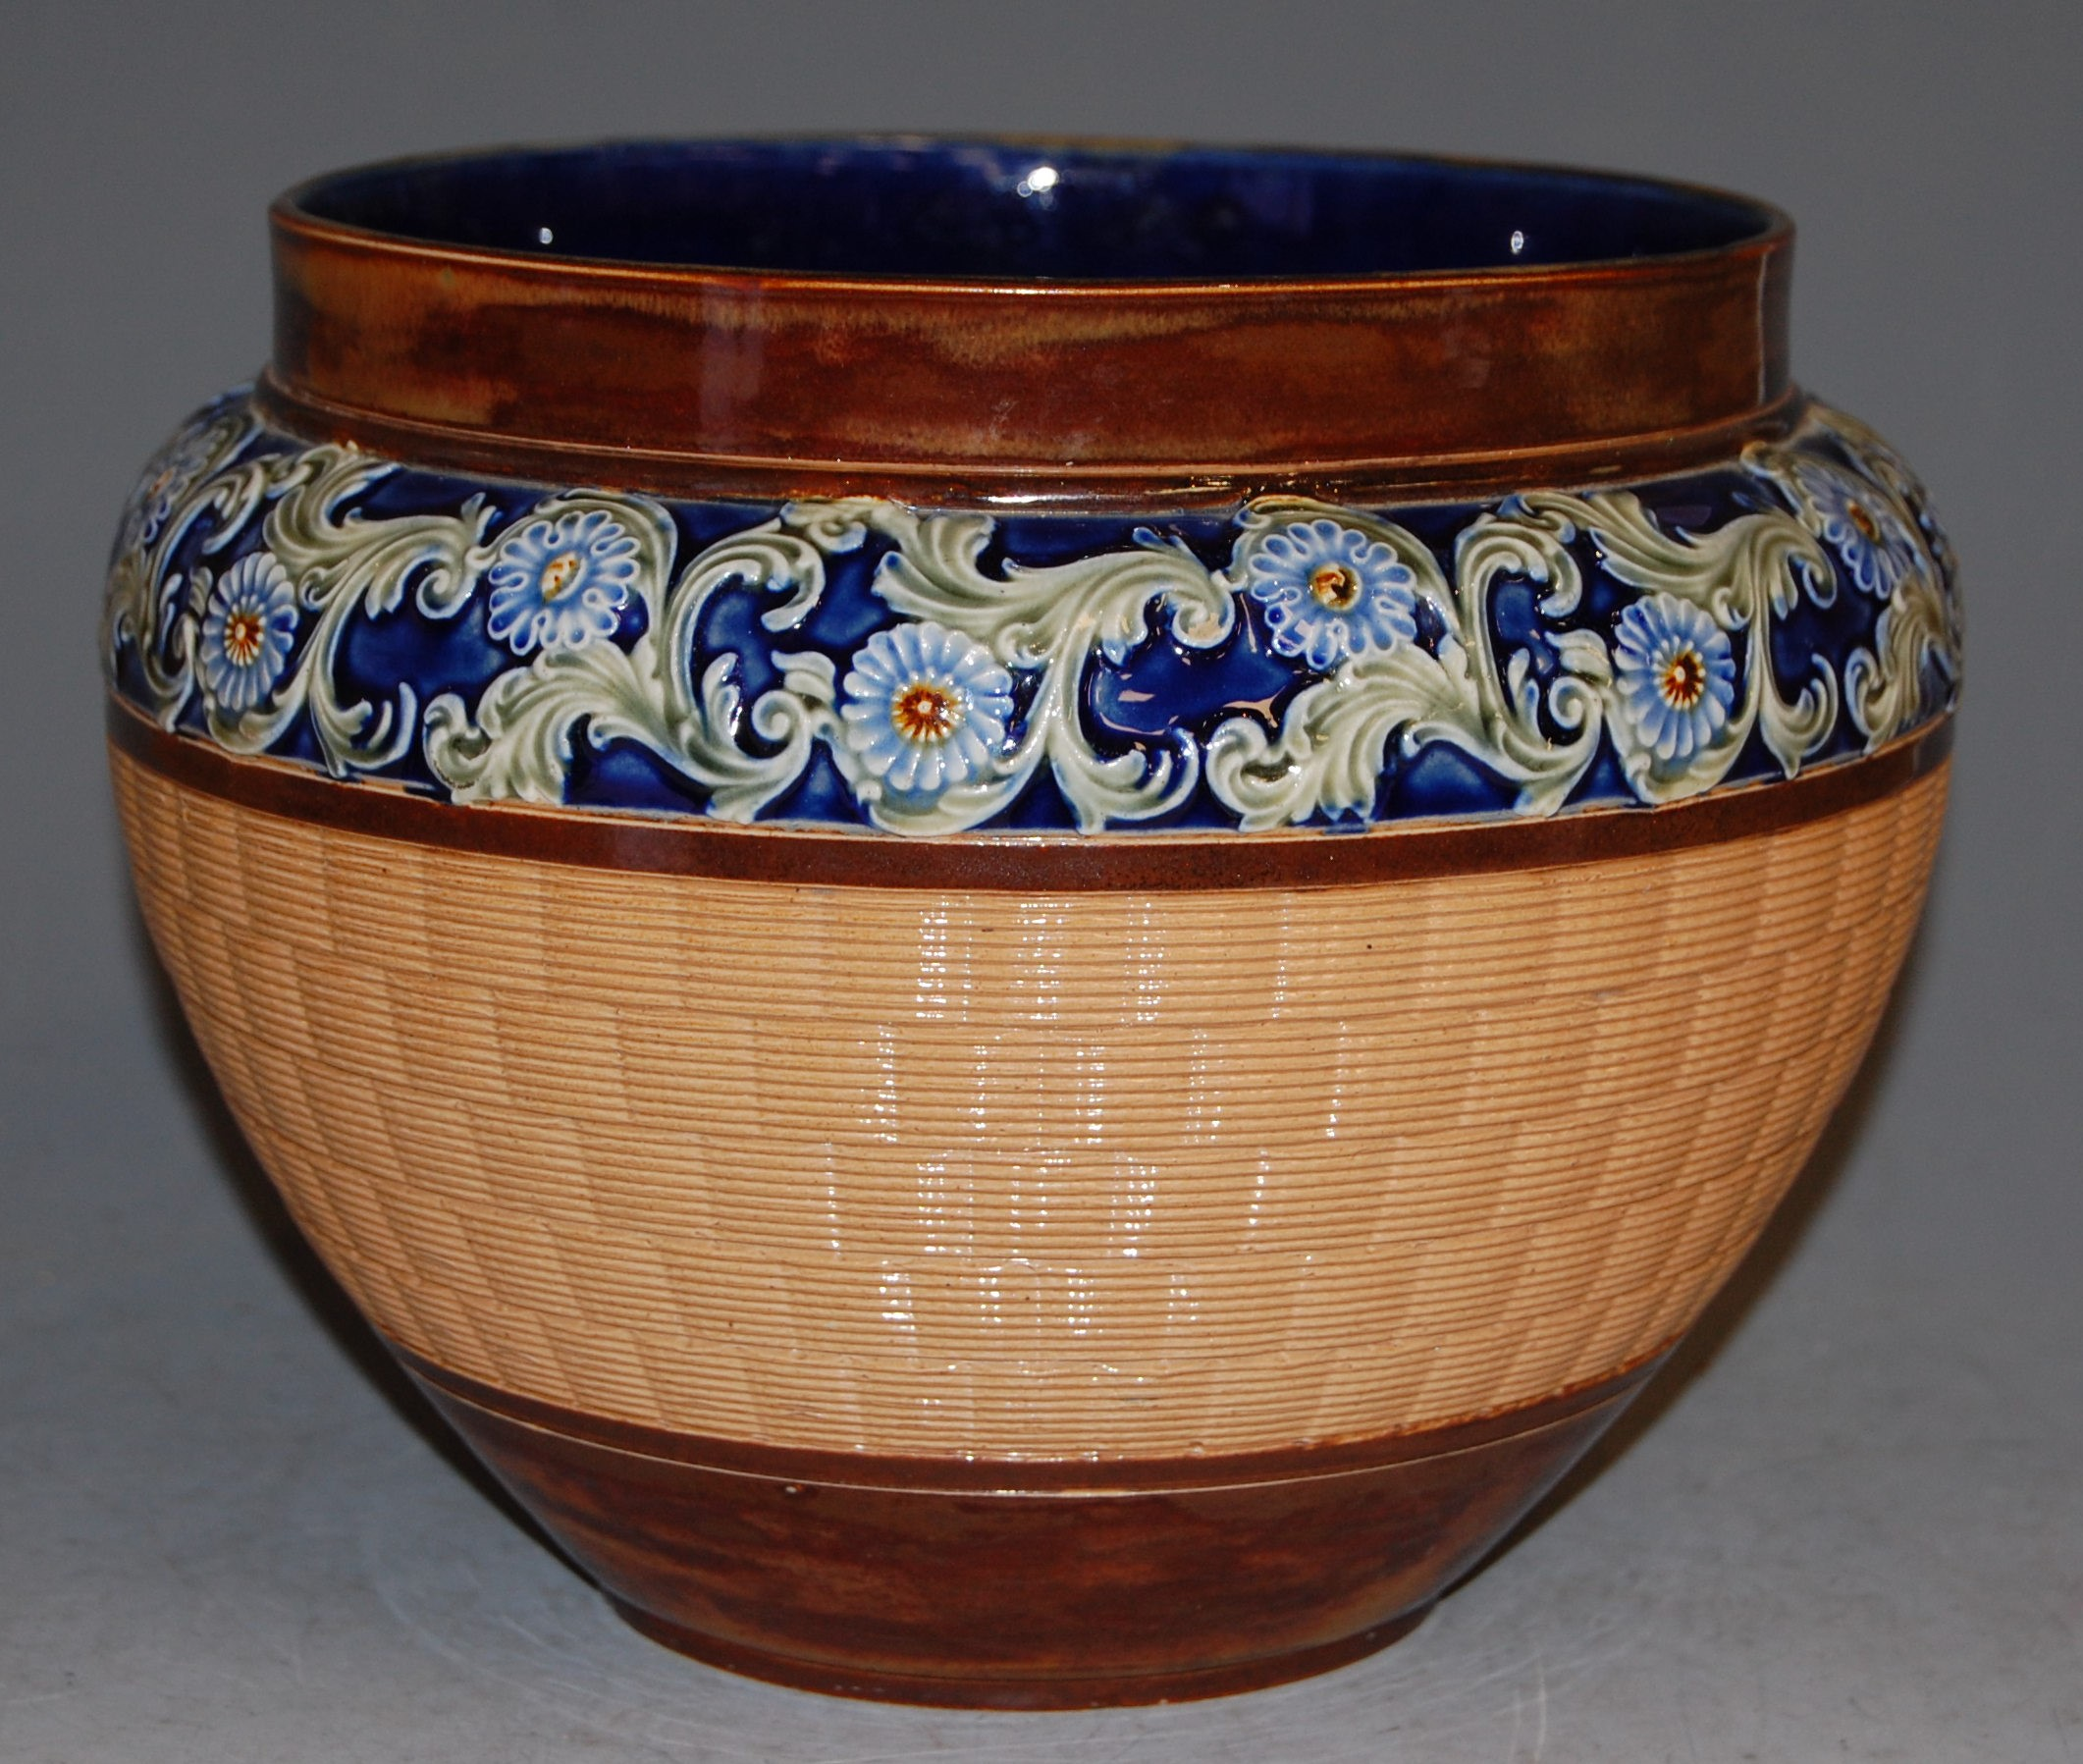 Lot 27 - An early 20th century Doulton Lambeth stoneware jardinière, having basket weave body and floral